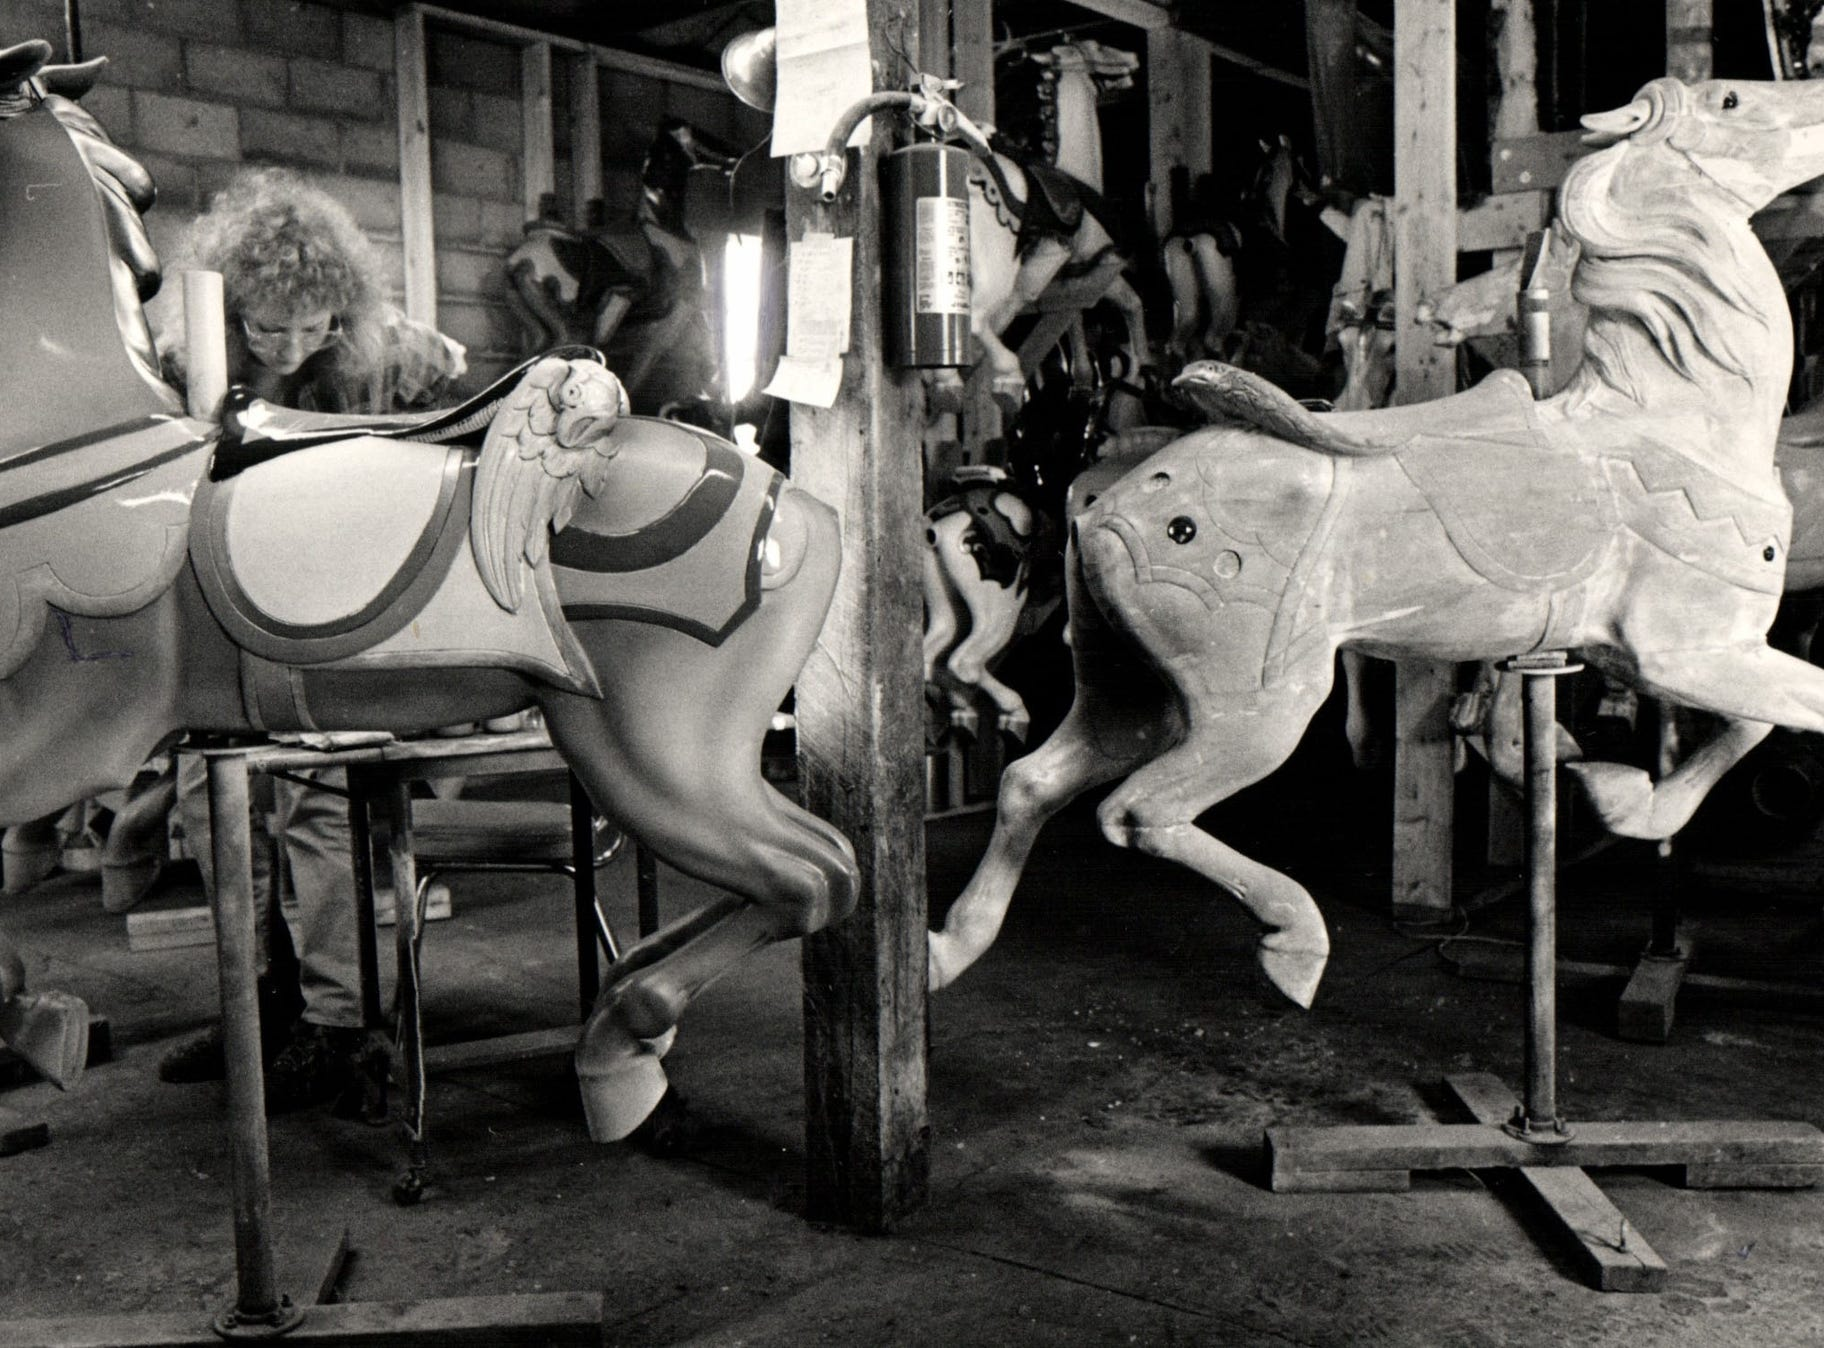 Boblo Island's carousel was dismantled and put up for auction in 1990.